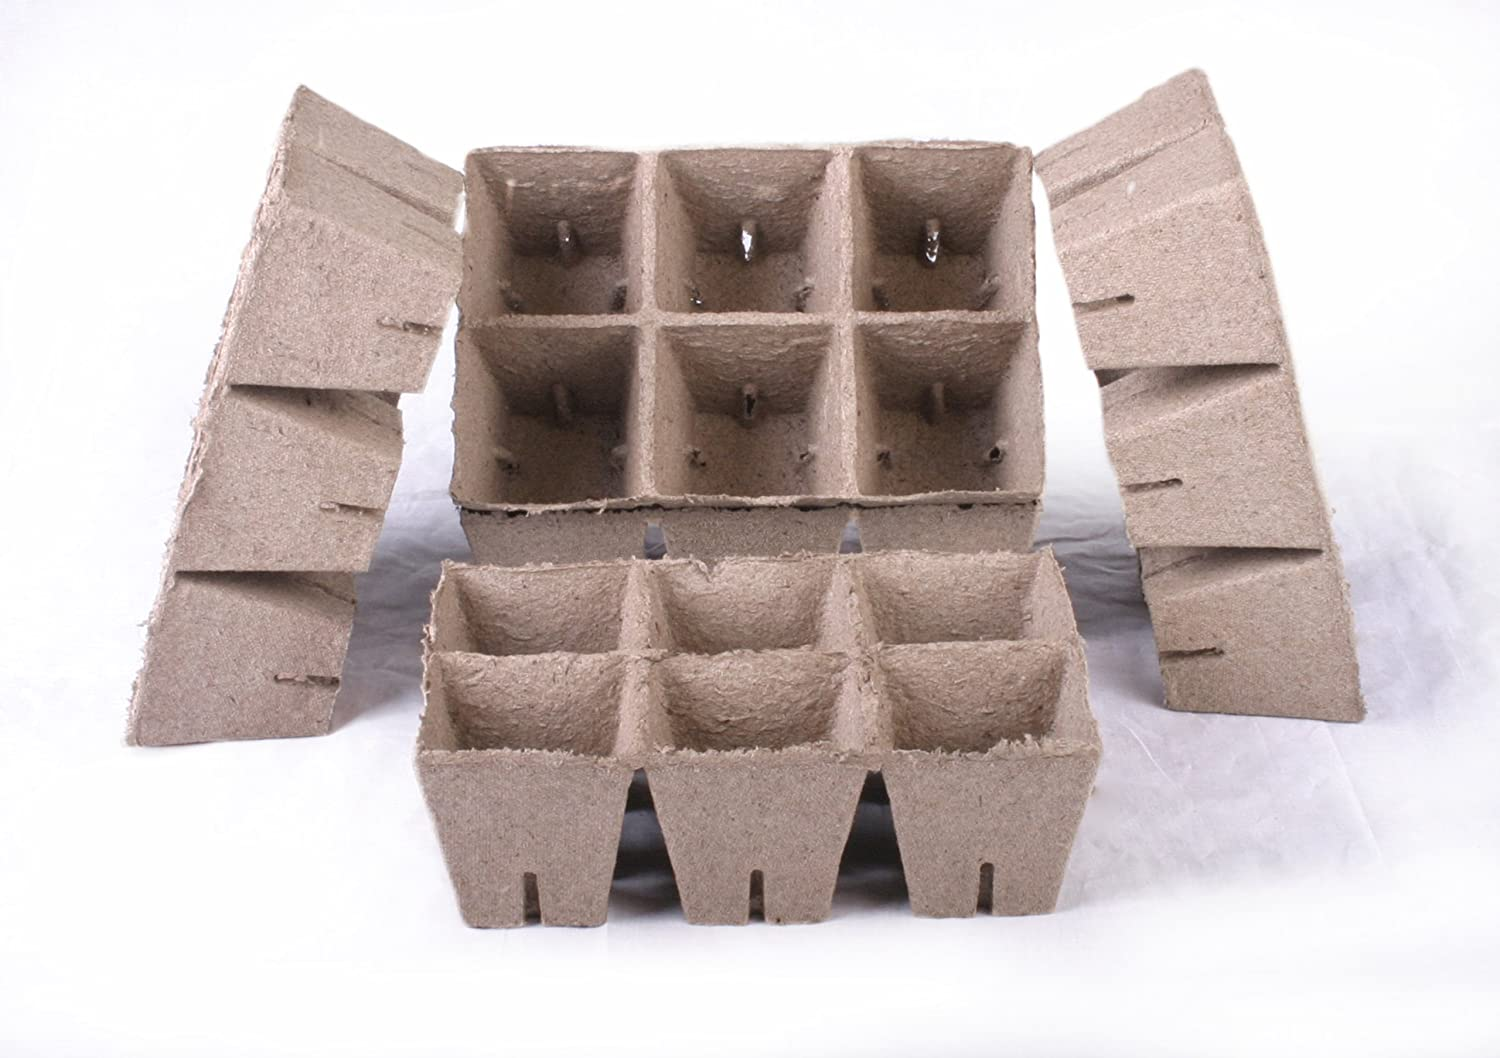 150 NEW Square Jiffy Peat Pots Size 3×3 – Strips Pots Are 3 Inch Square At the Top and 3 Inch Deep.